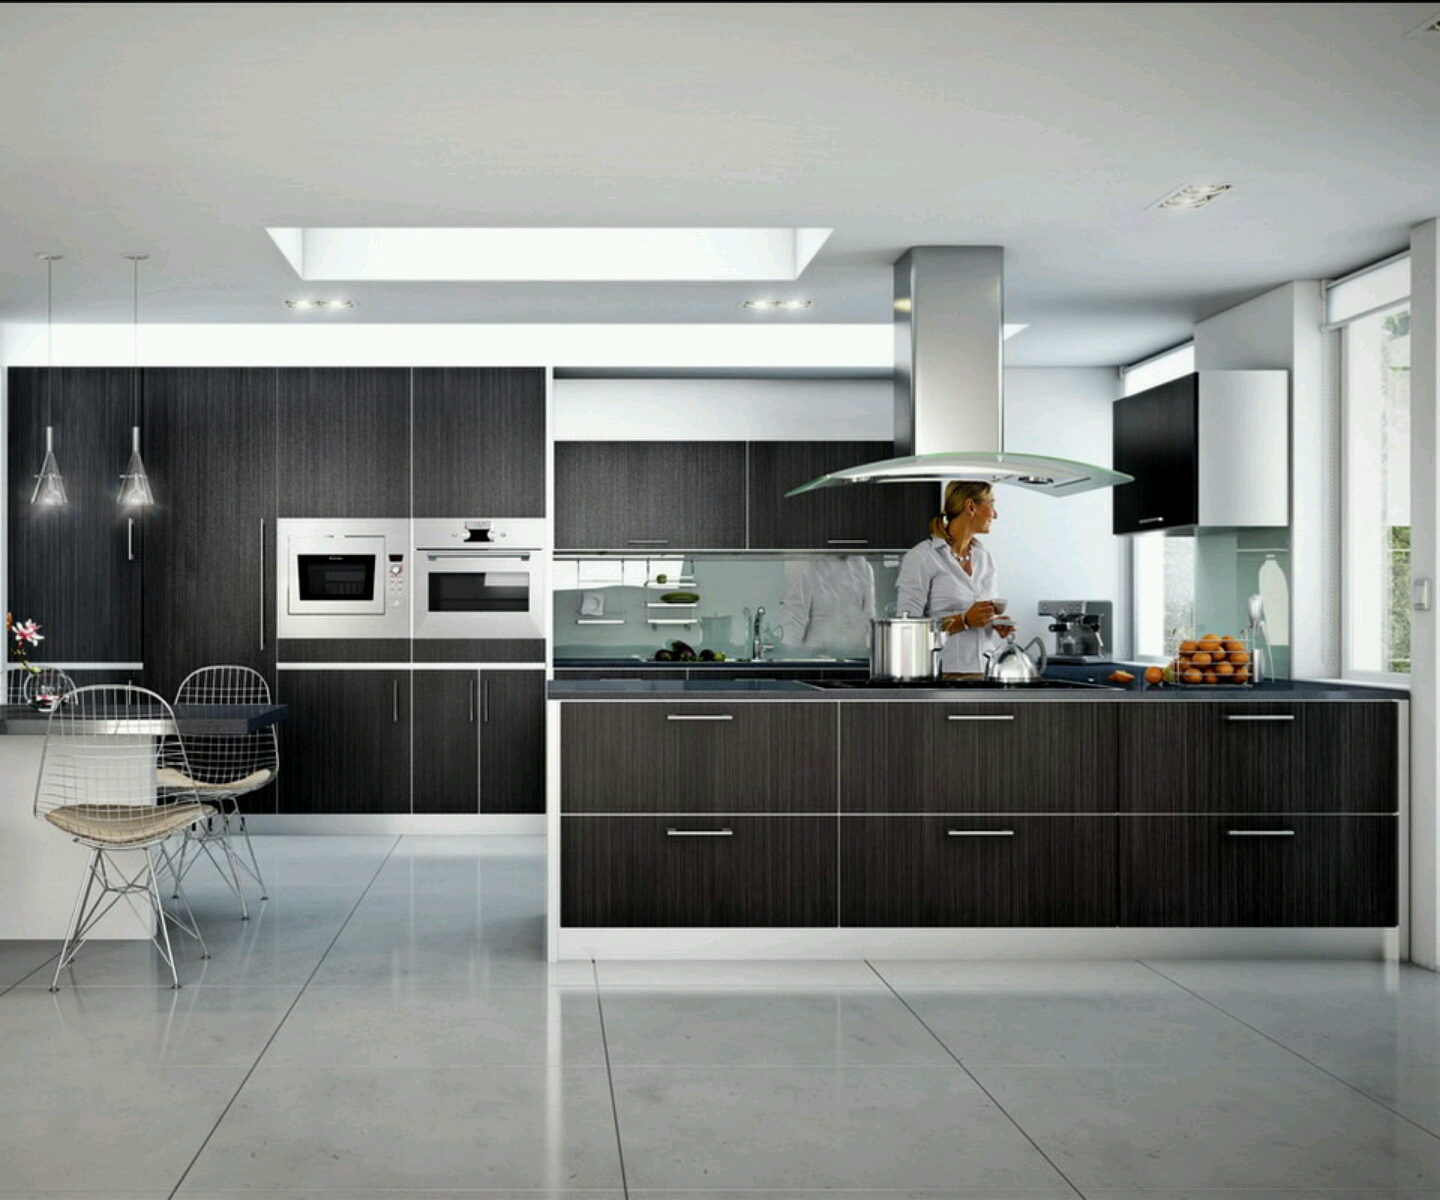 Modern homes ultra modern kitchen designs ideas new for House design kitchen ideas